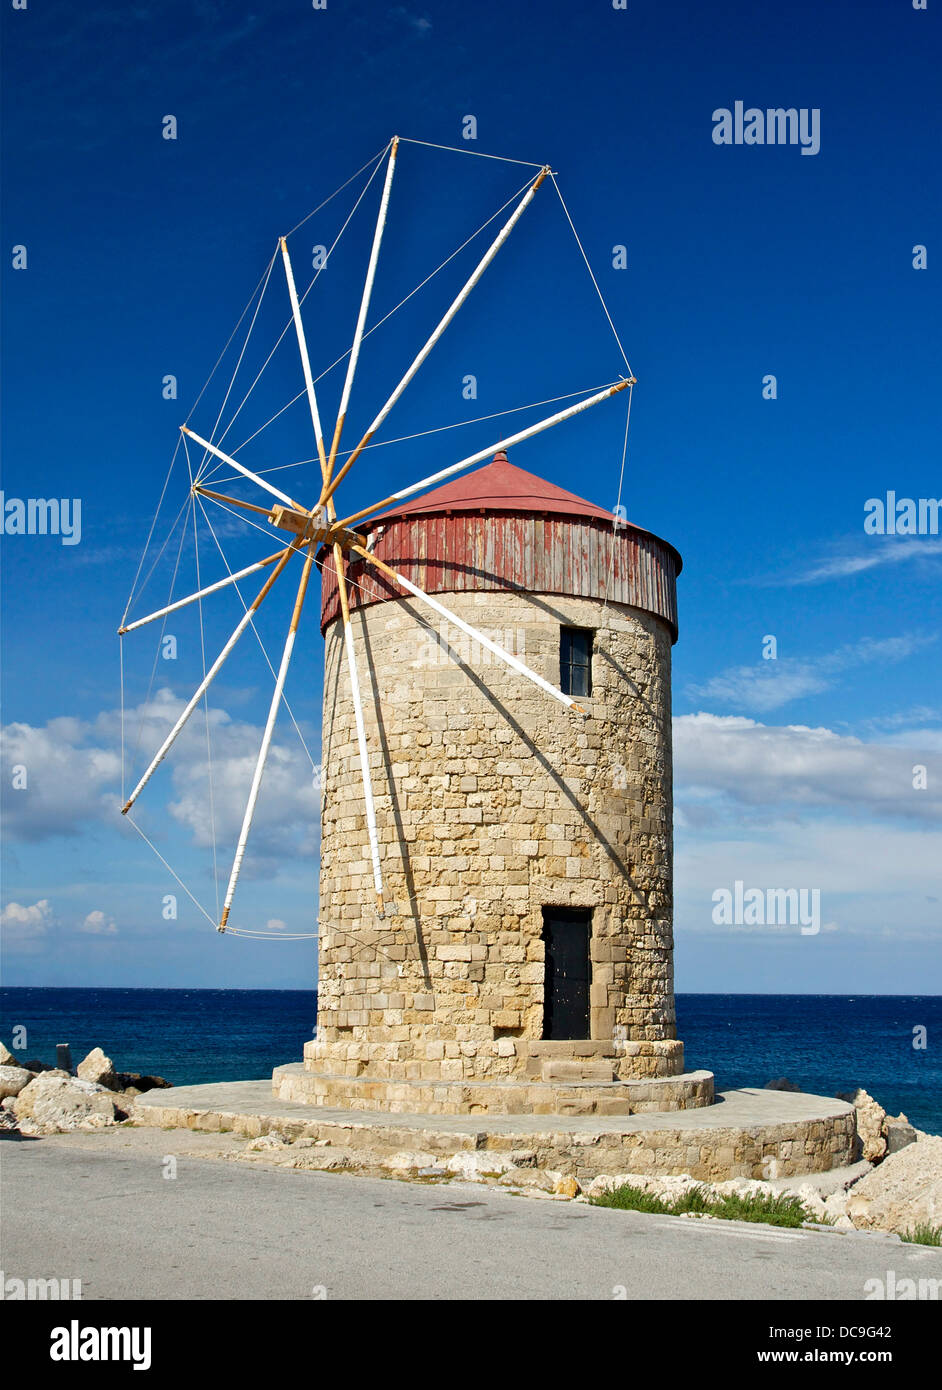 Windmill (14th century, restored) on the harbour of Rhodes, Greece. - Stock Image